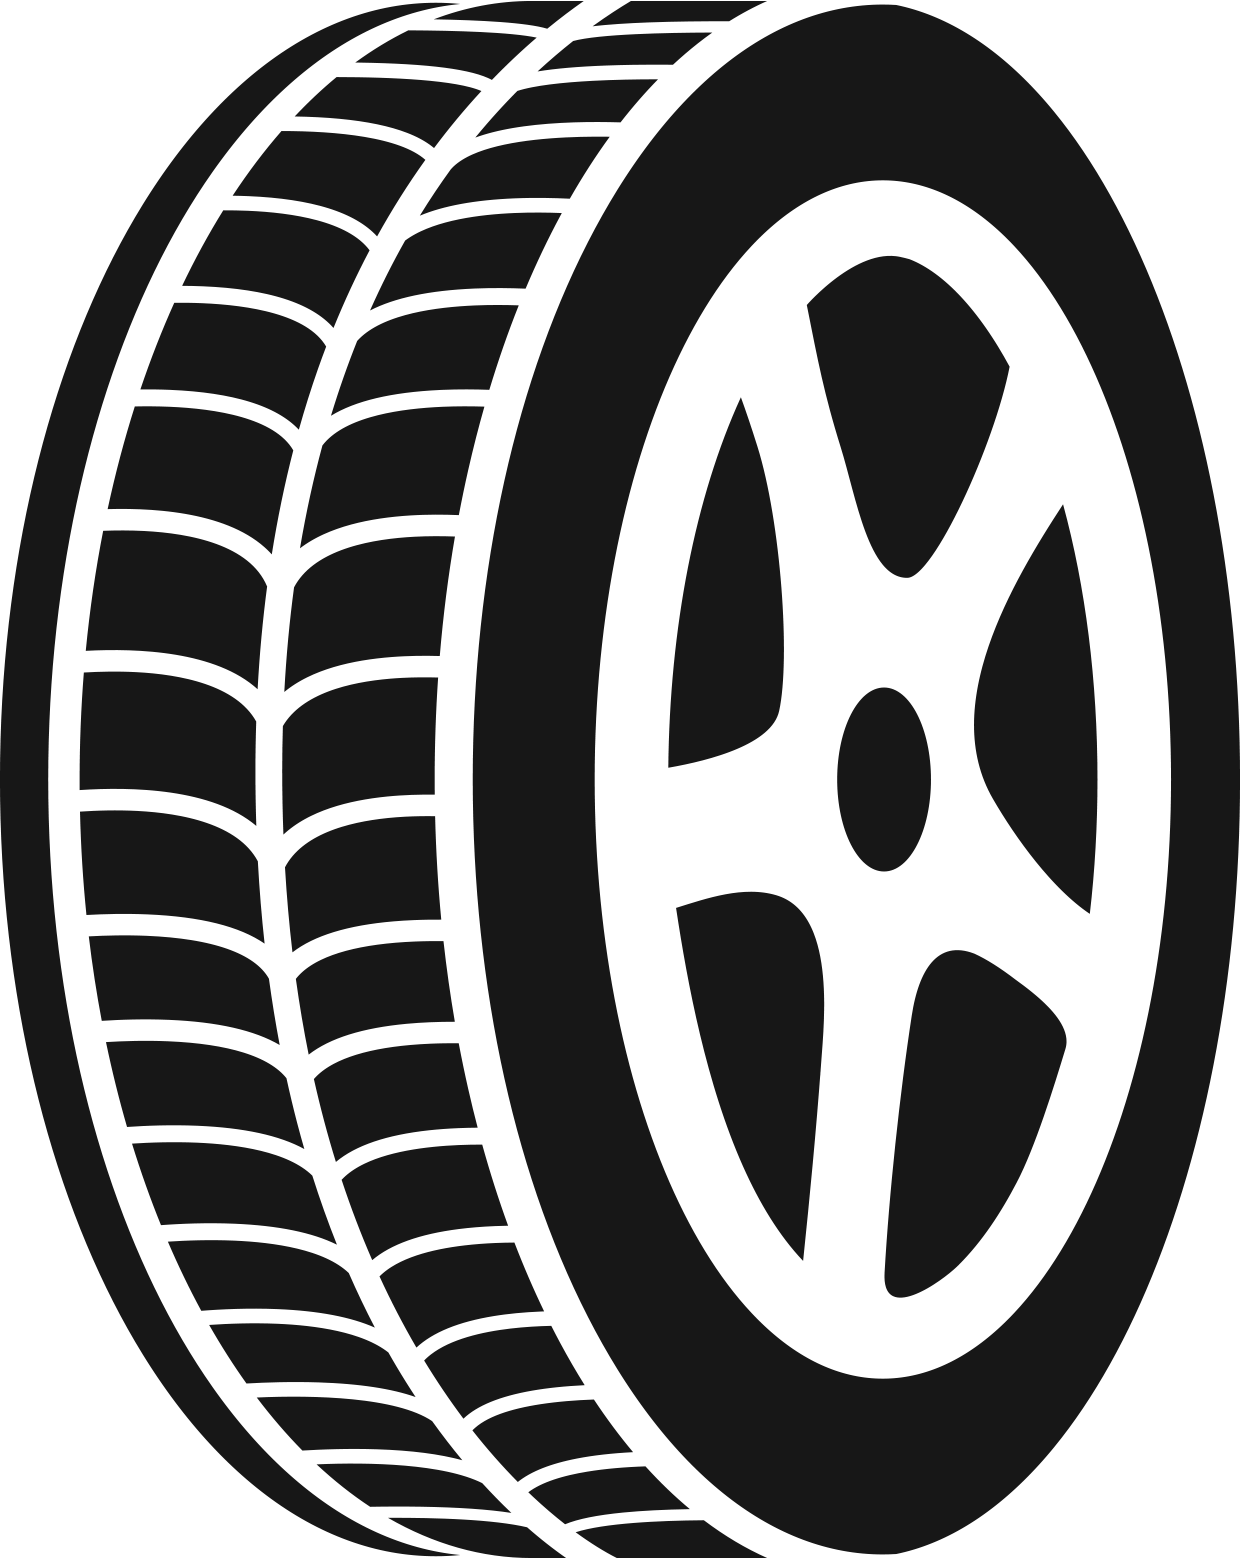 Black and white of. Wheel clipart spare tire